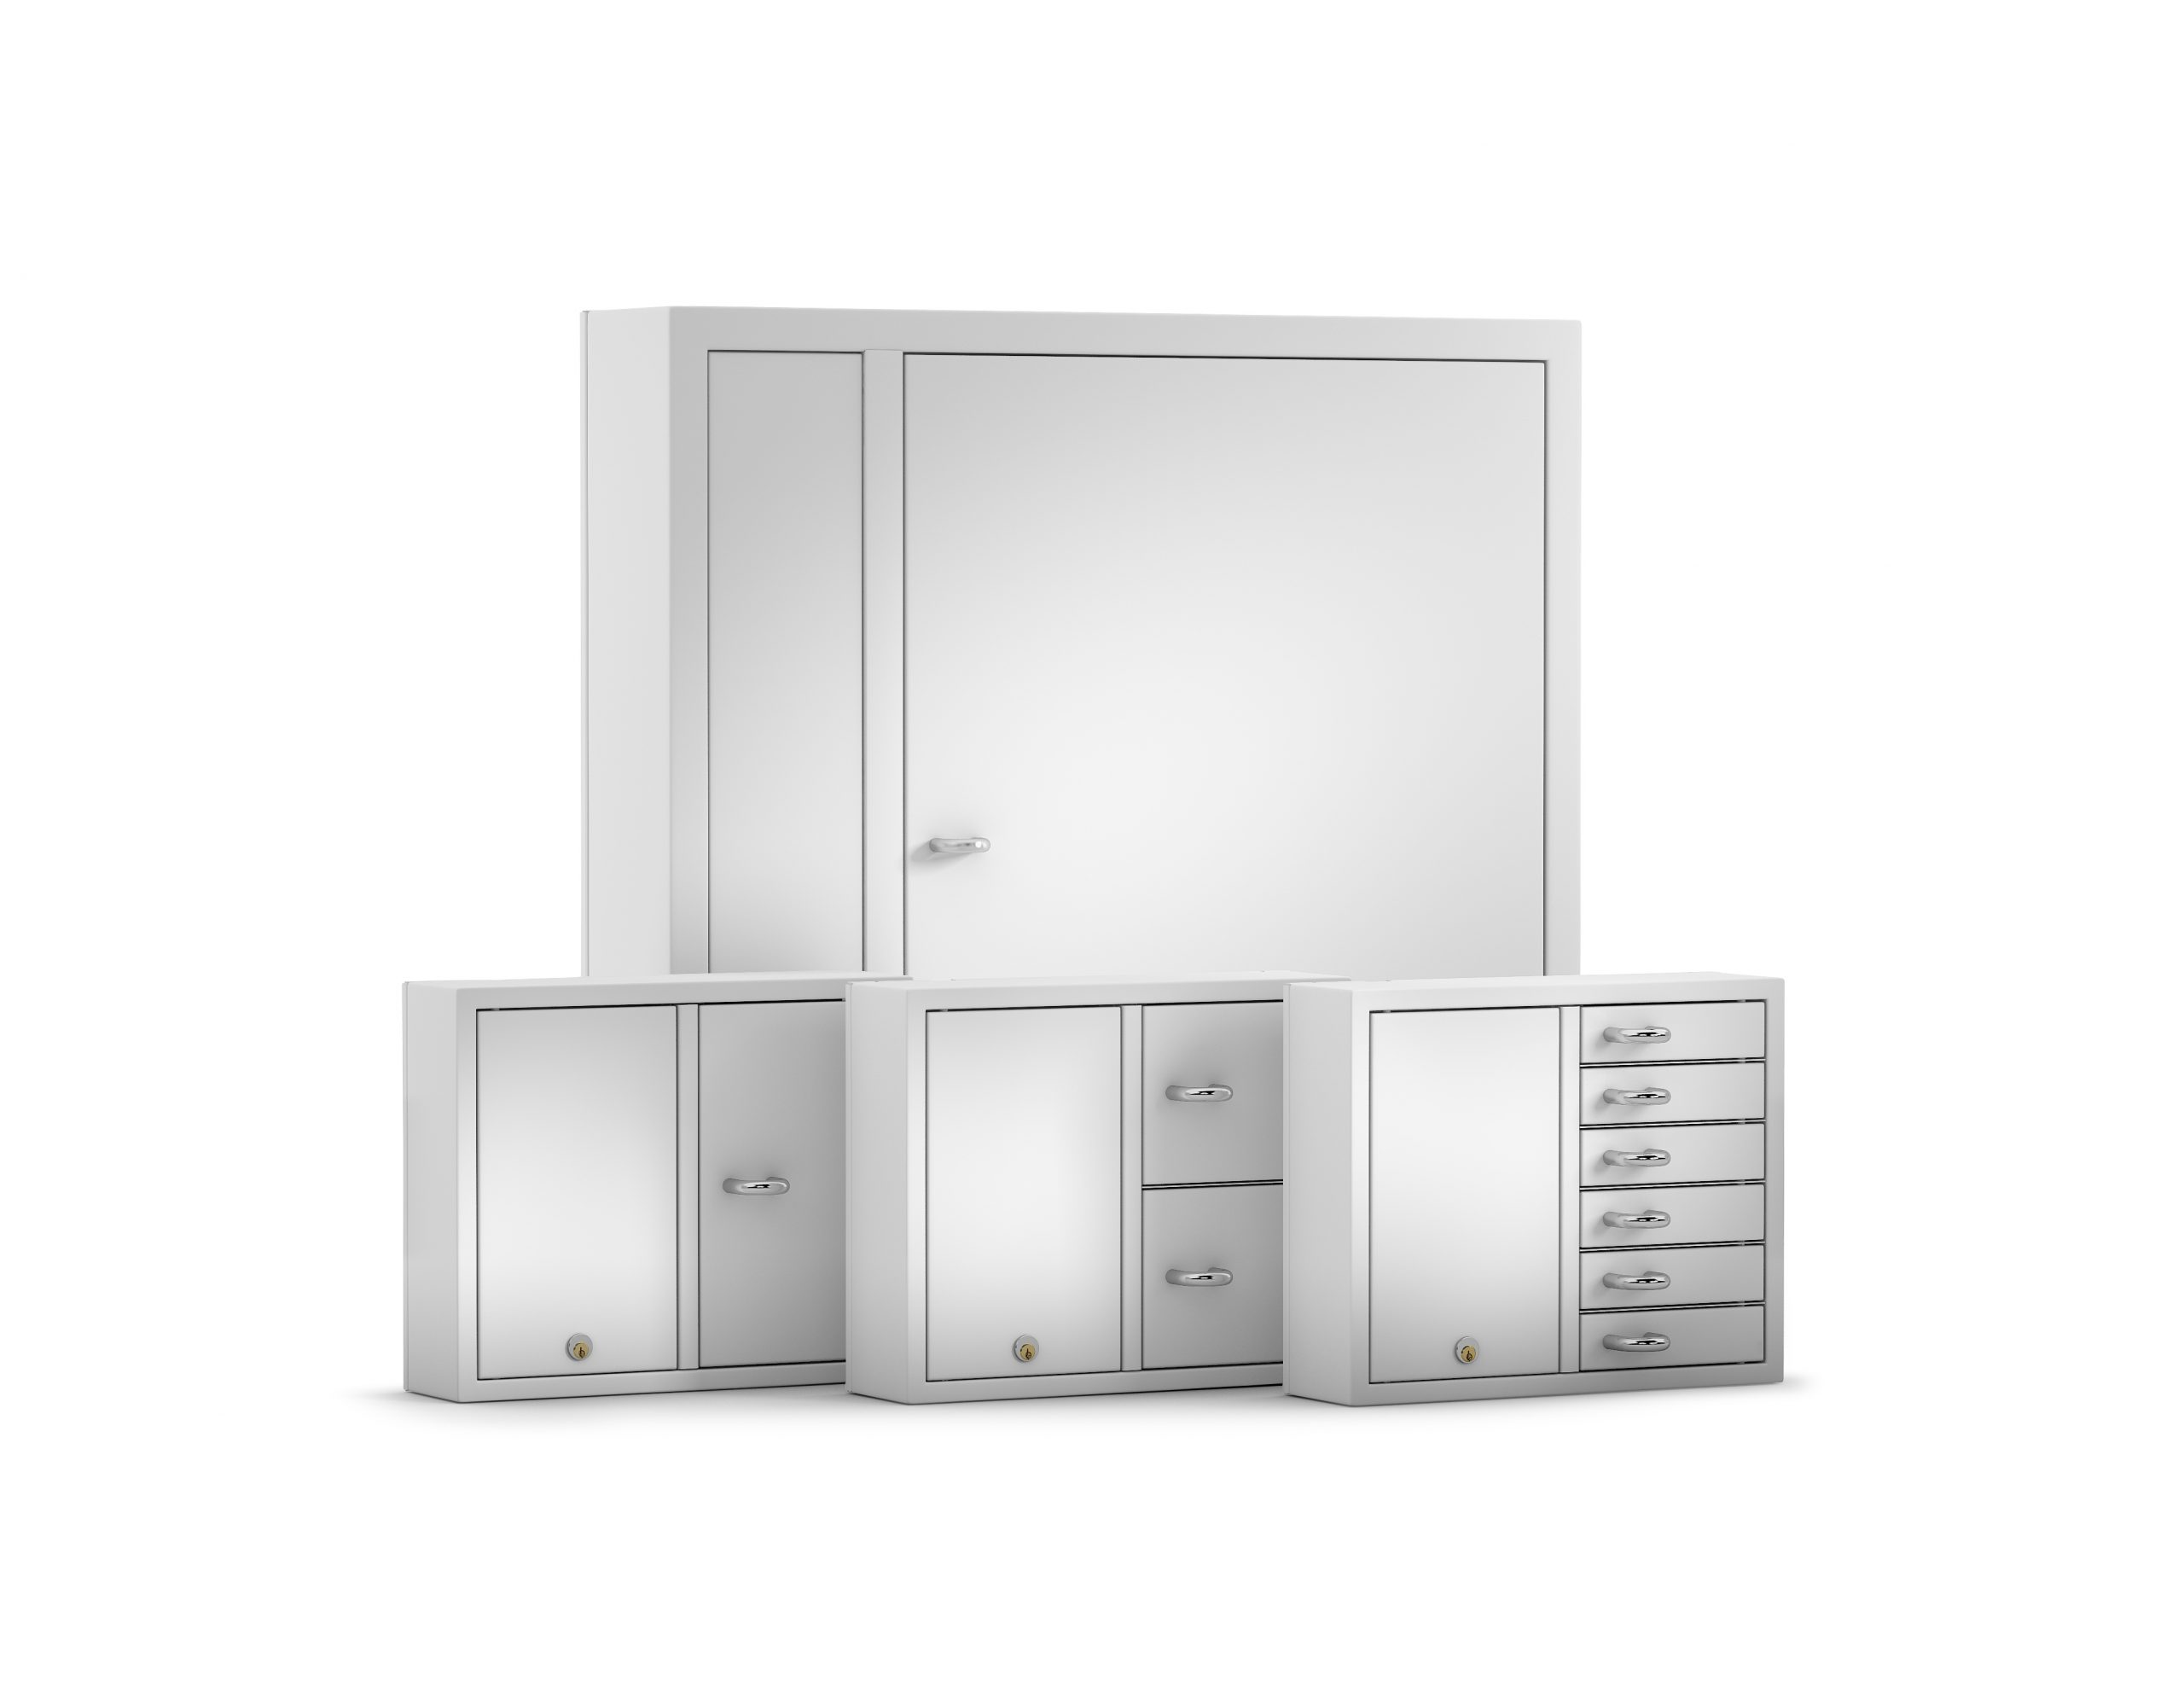 All the Expansion series distribution cabinets are designed for key management